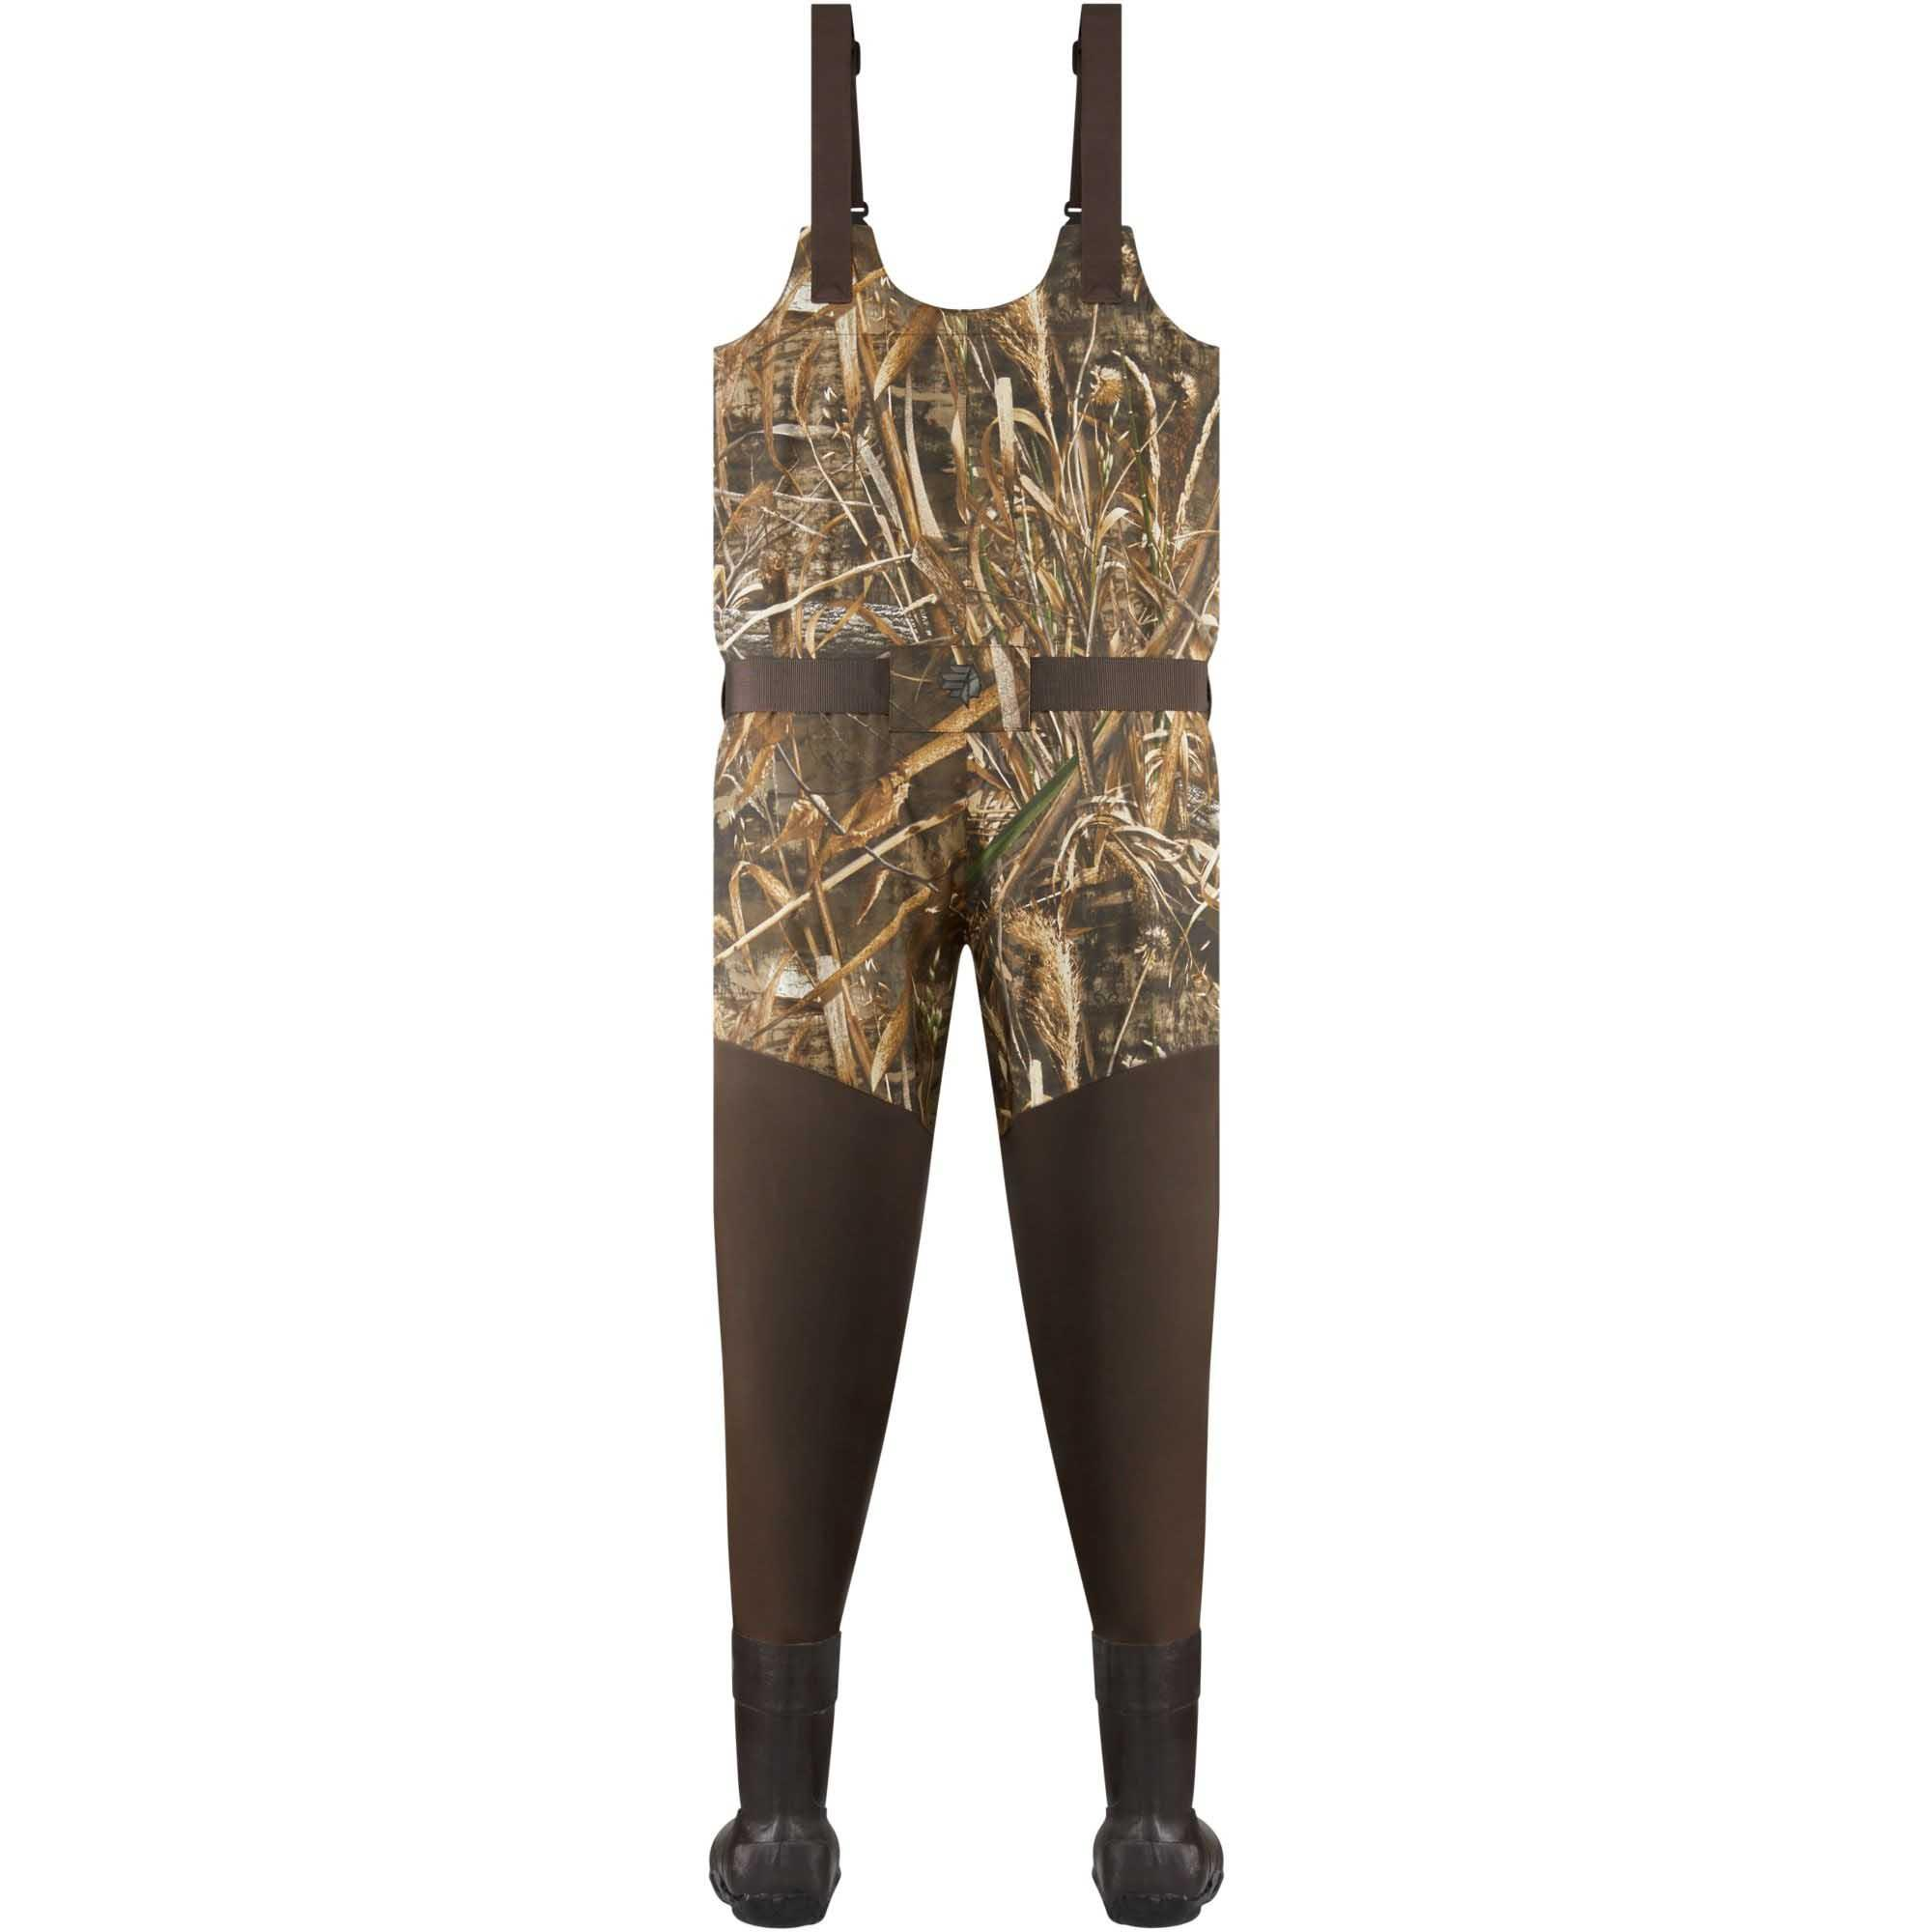 LaCrosse Wetlands Waders 1600G, Max 5 - Stout Sizes_2.jpg